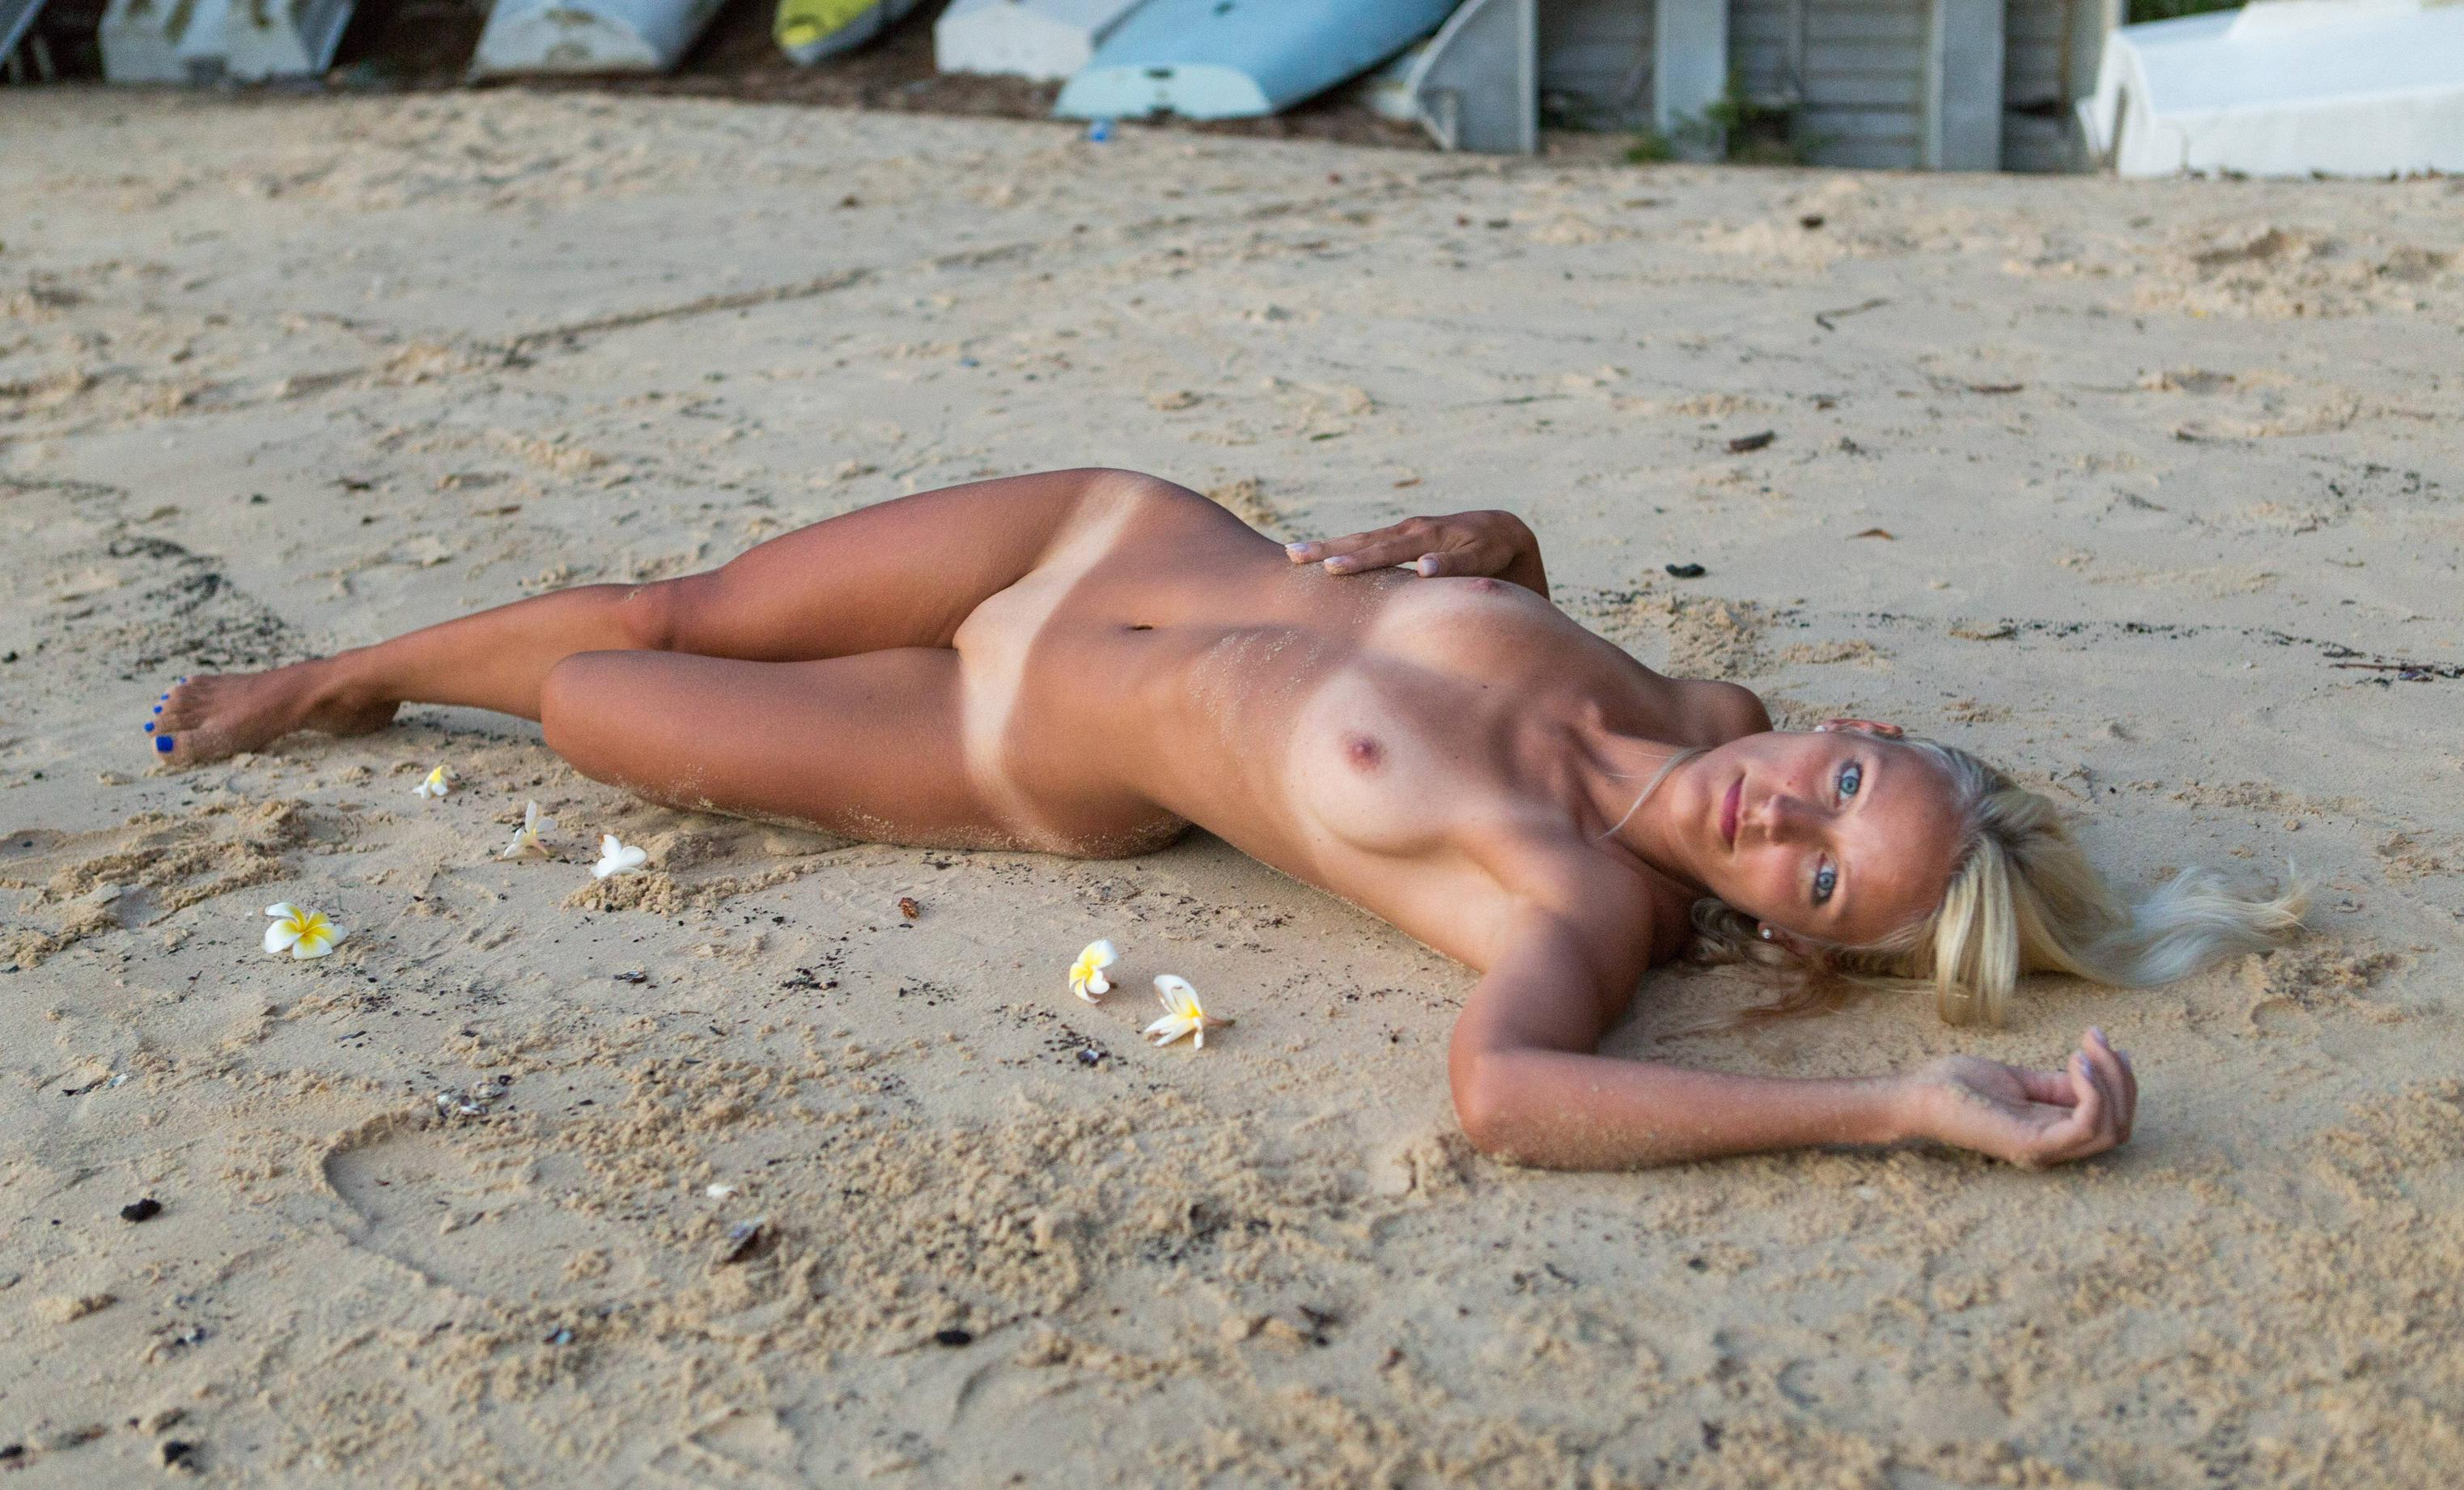 Remarkable, mature swedish nude beach congratulate